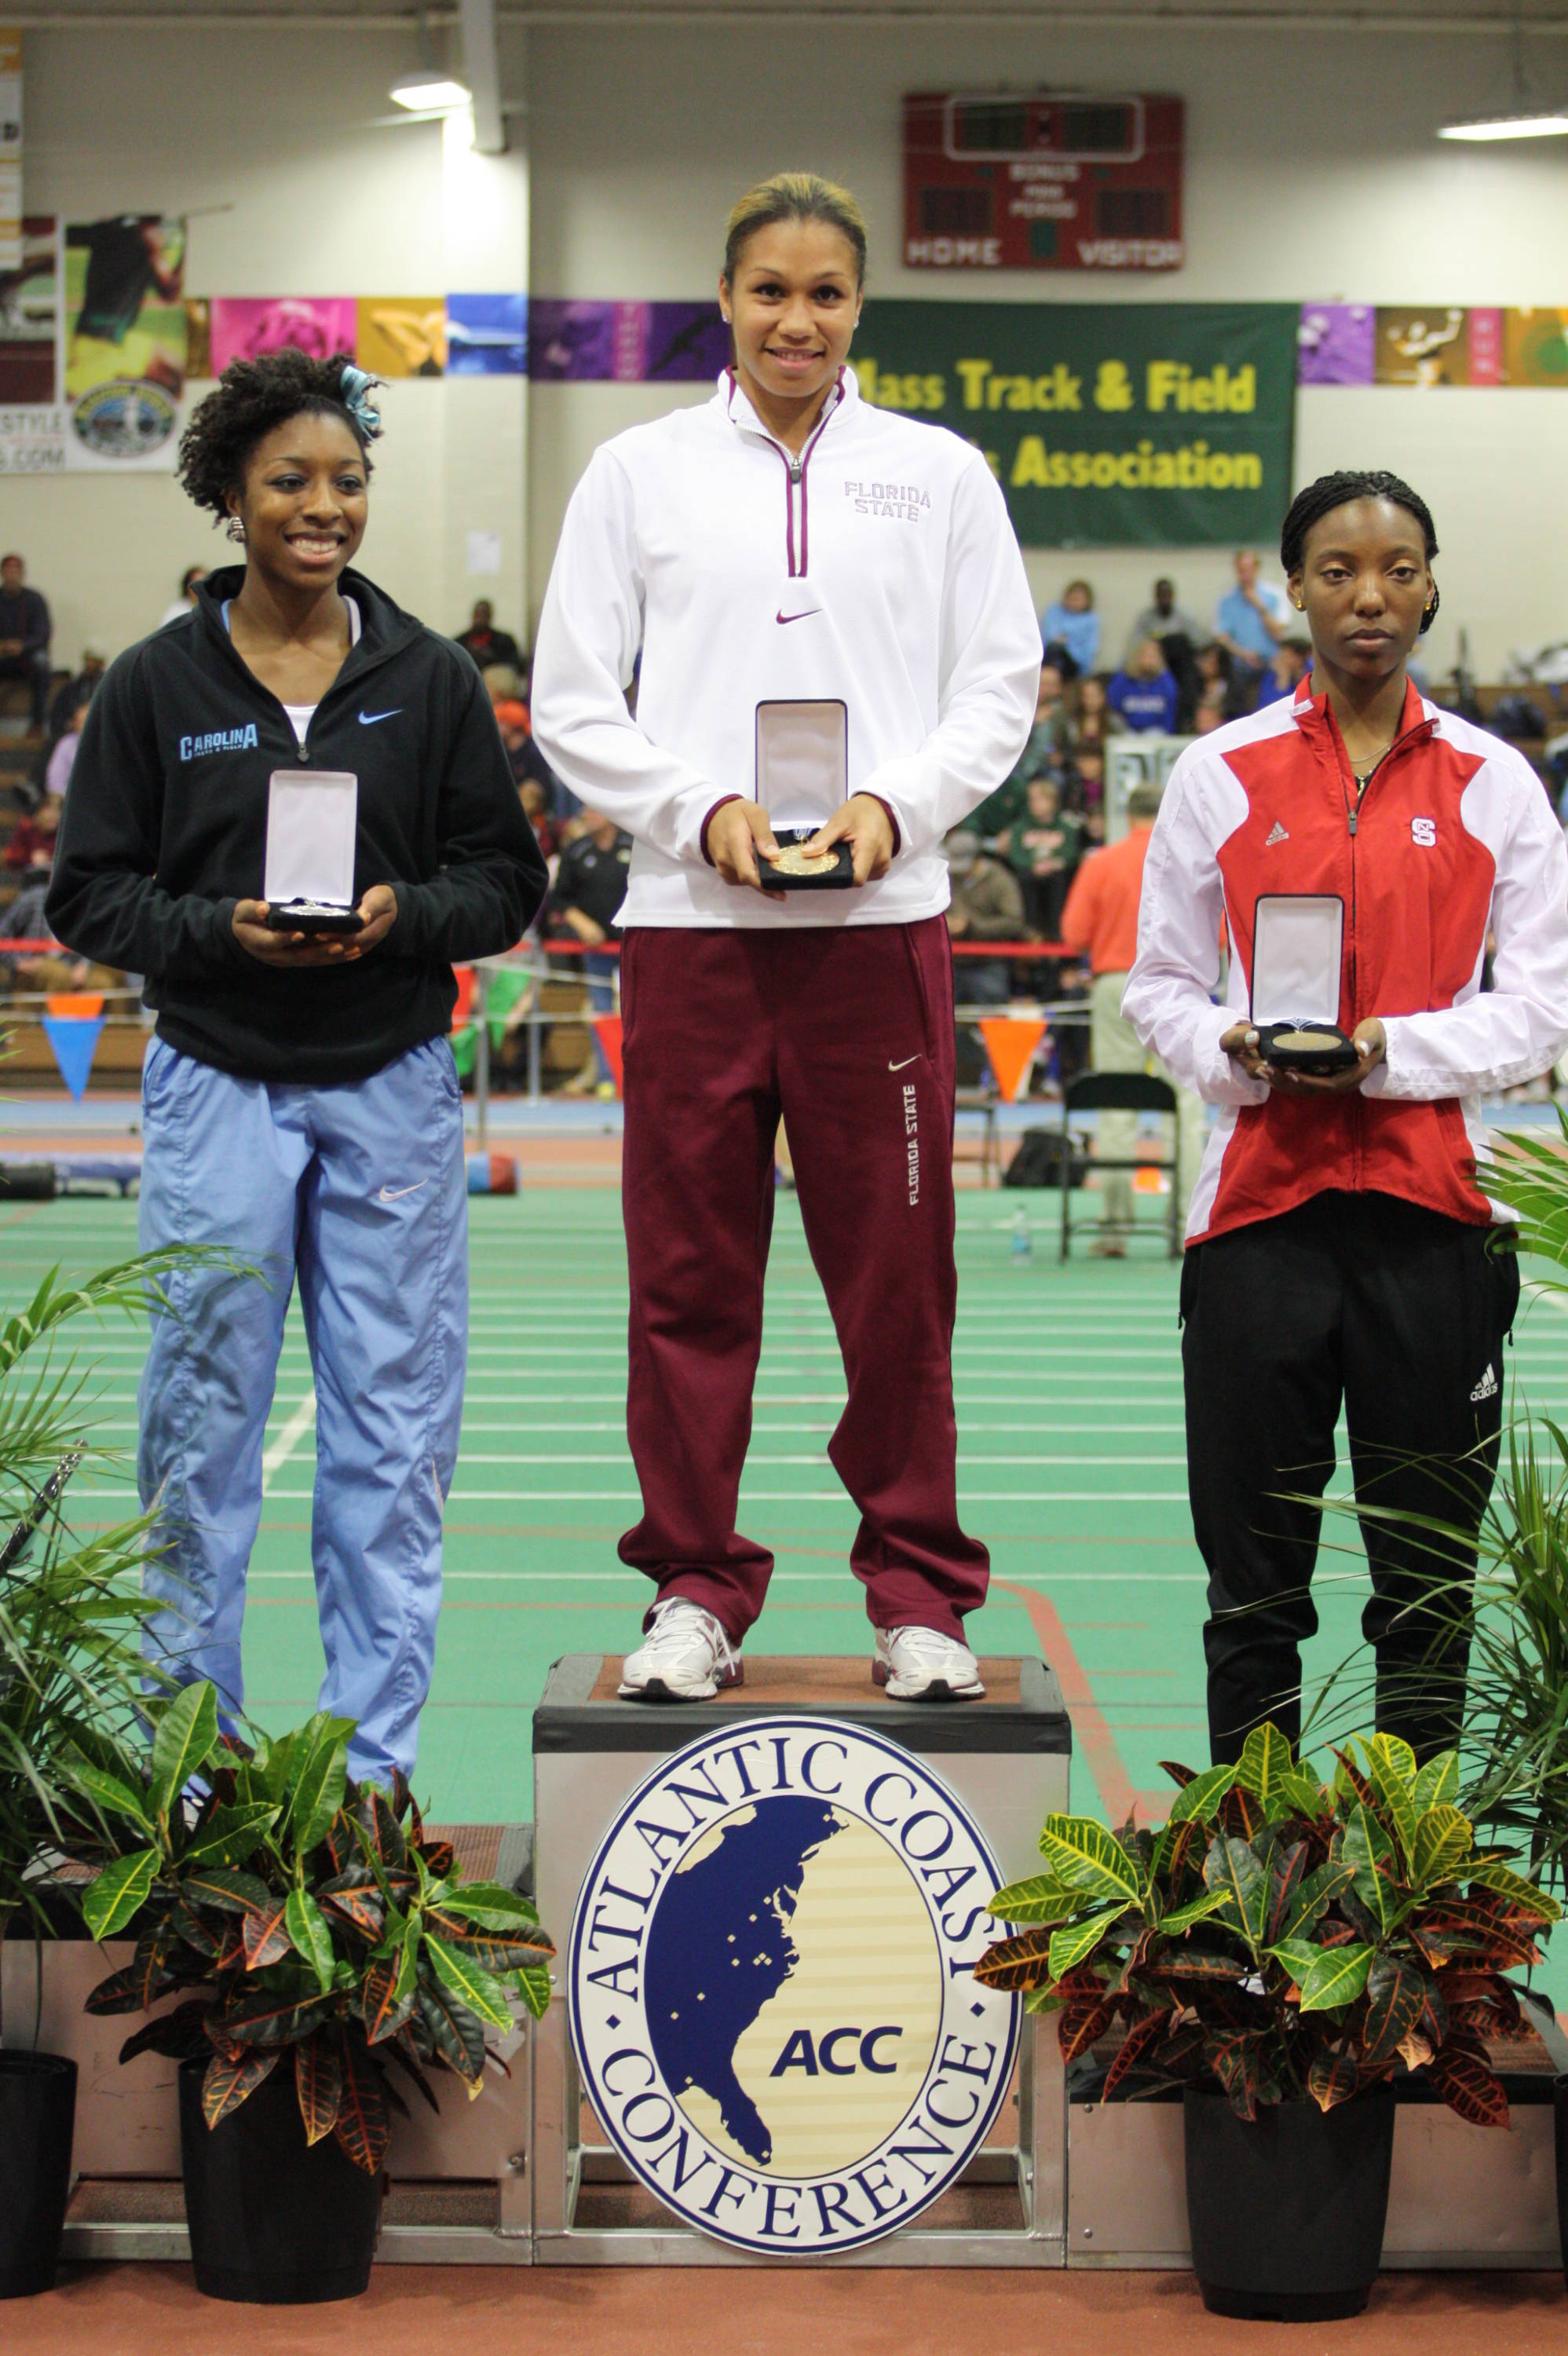 Senior Amy Harris climbed atop the podium after winning the long jump ....